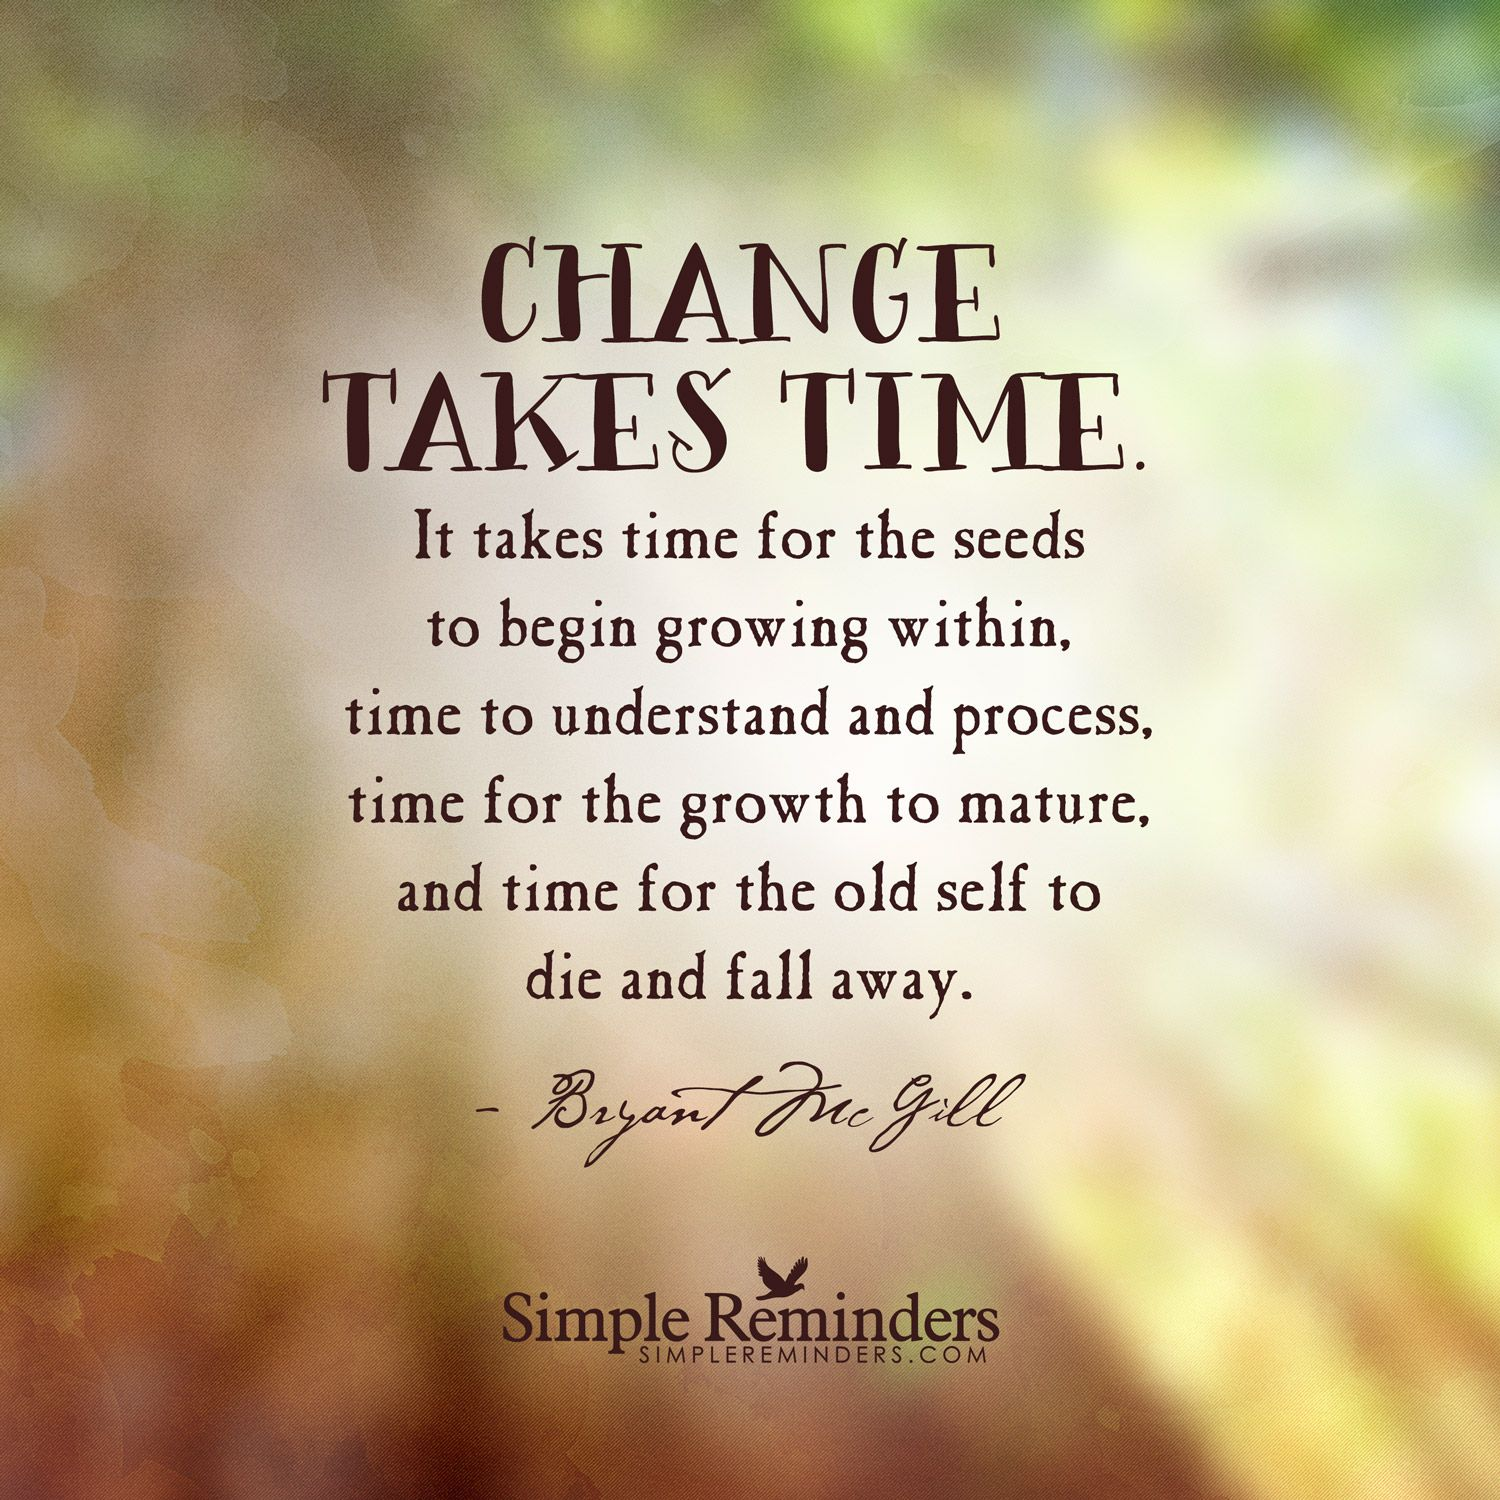 Quotes About Change And Growth: Change Takes Time. It Takes Time For The Seeds To Begin